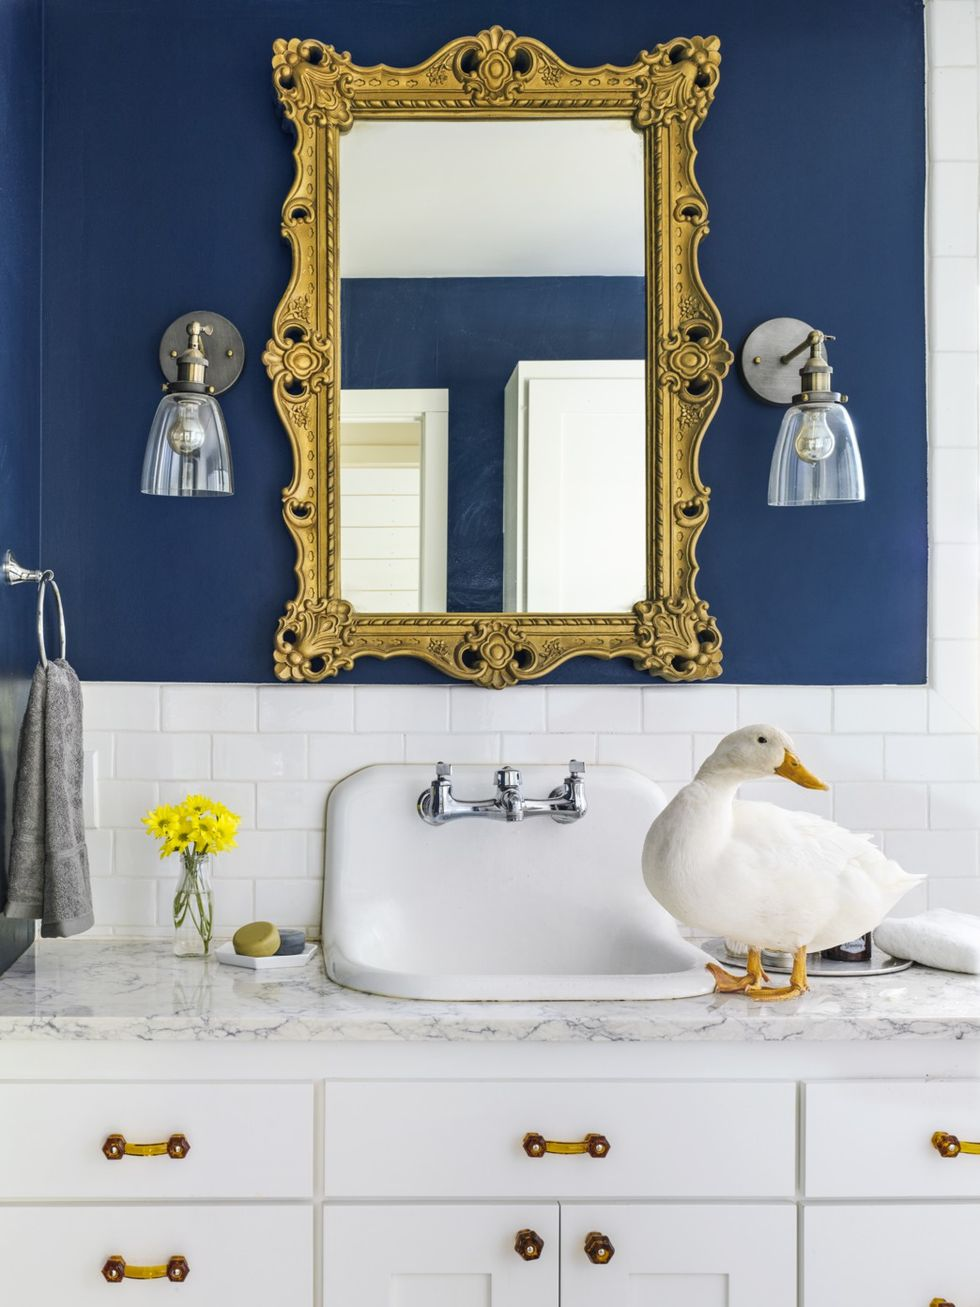 Bronze and Glass Sconces and rustic bathroom lighting ideas with white tile backsplash in dark blue with ornate square mirror and goose